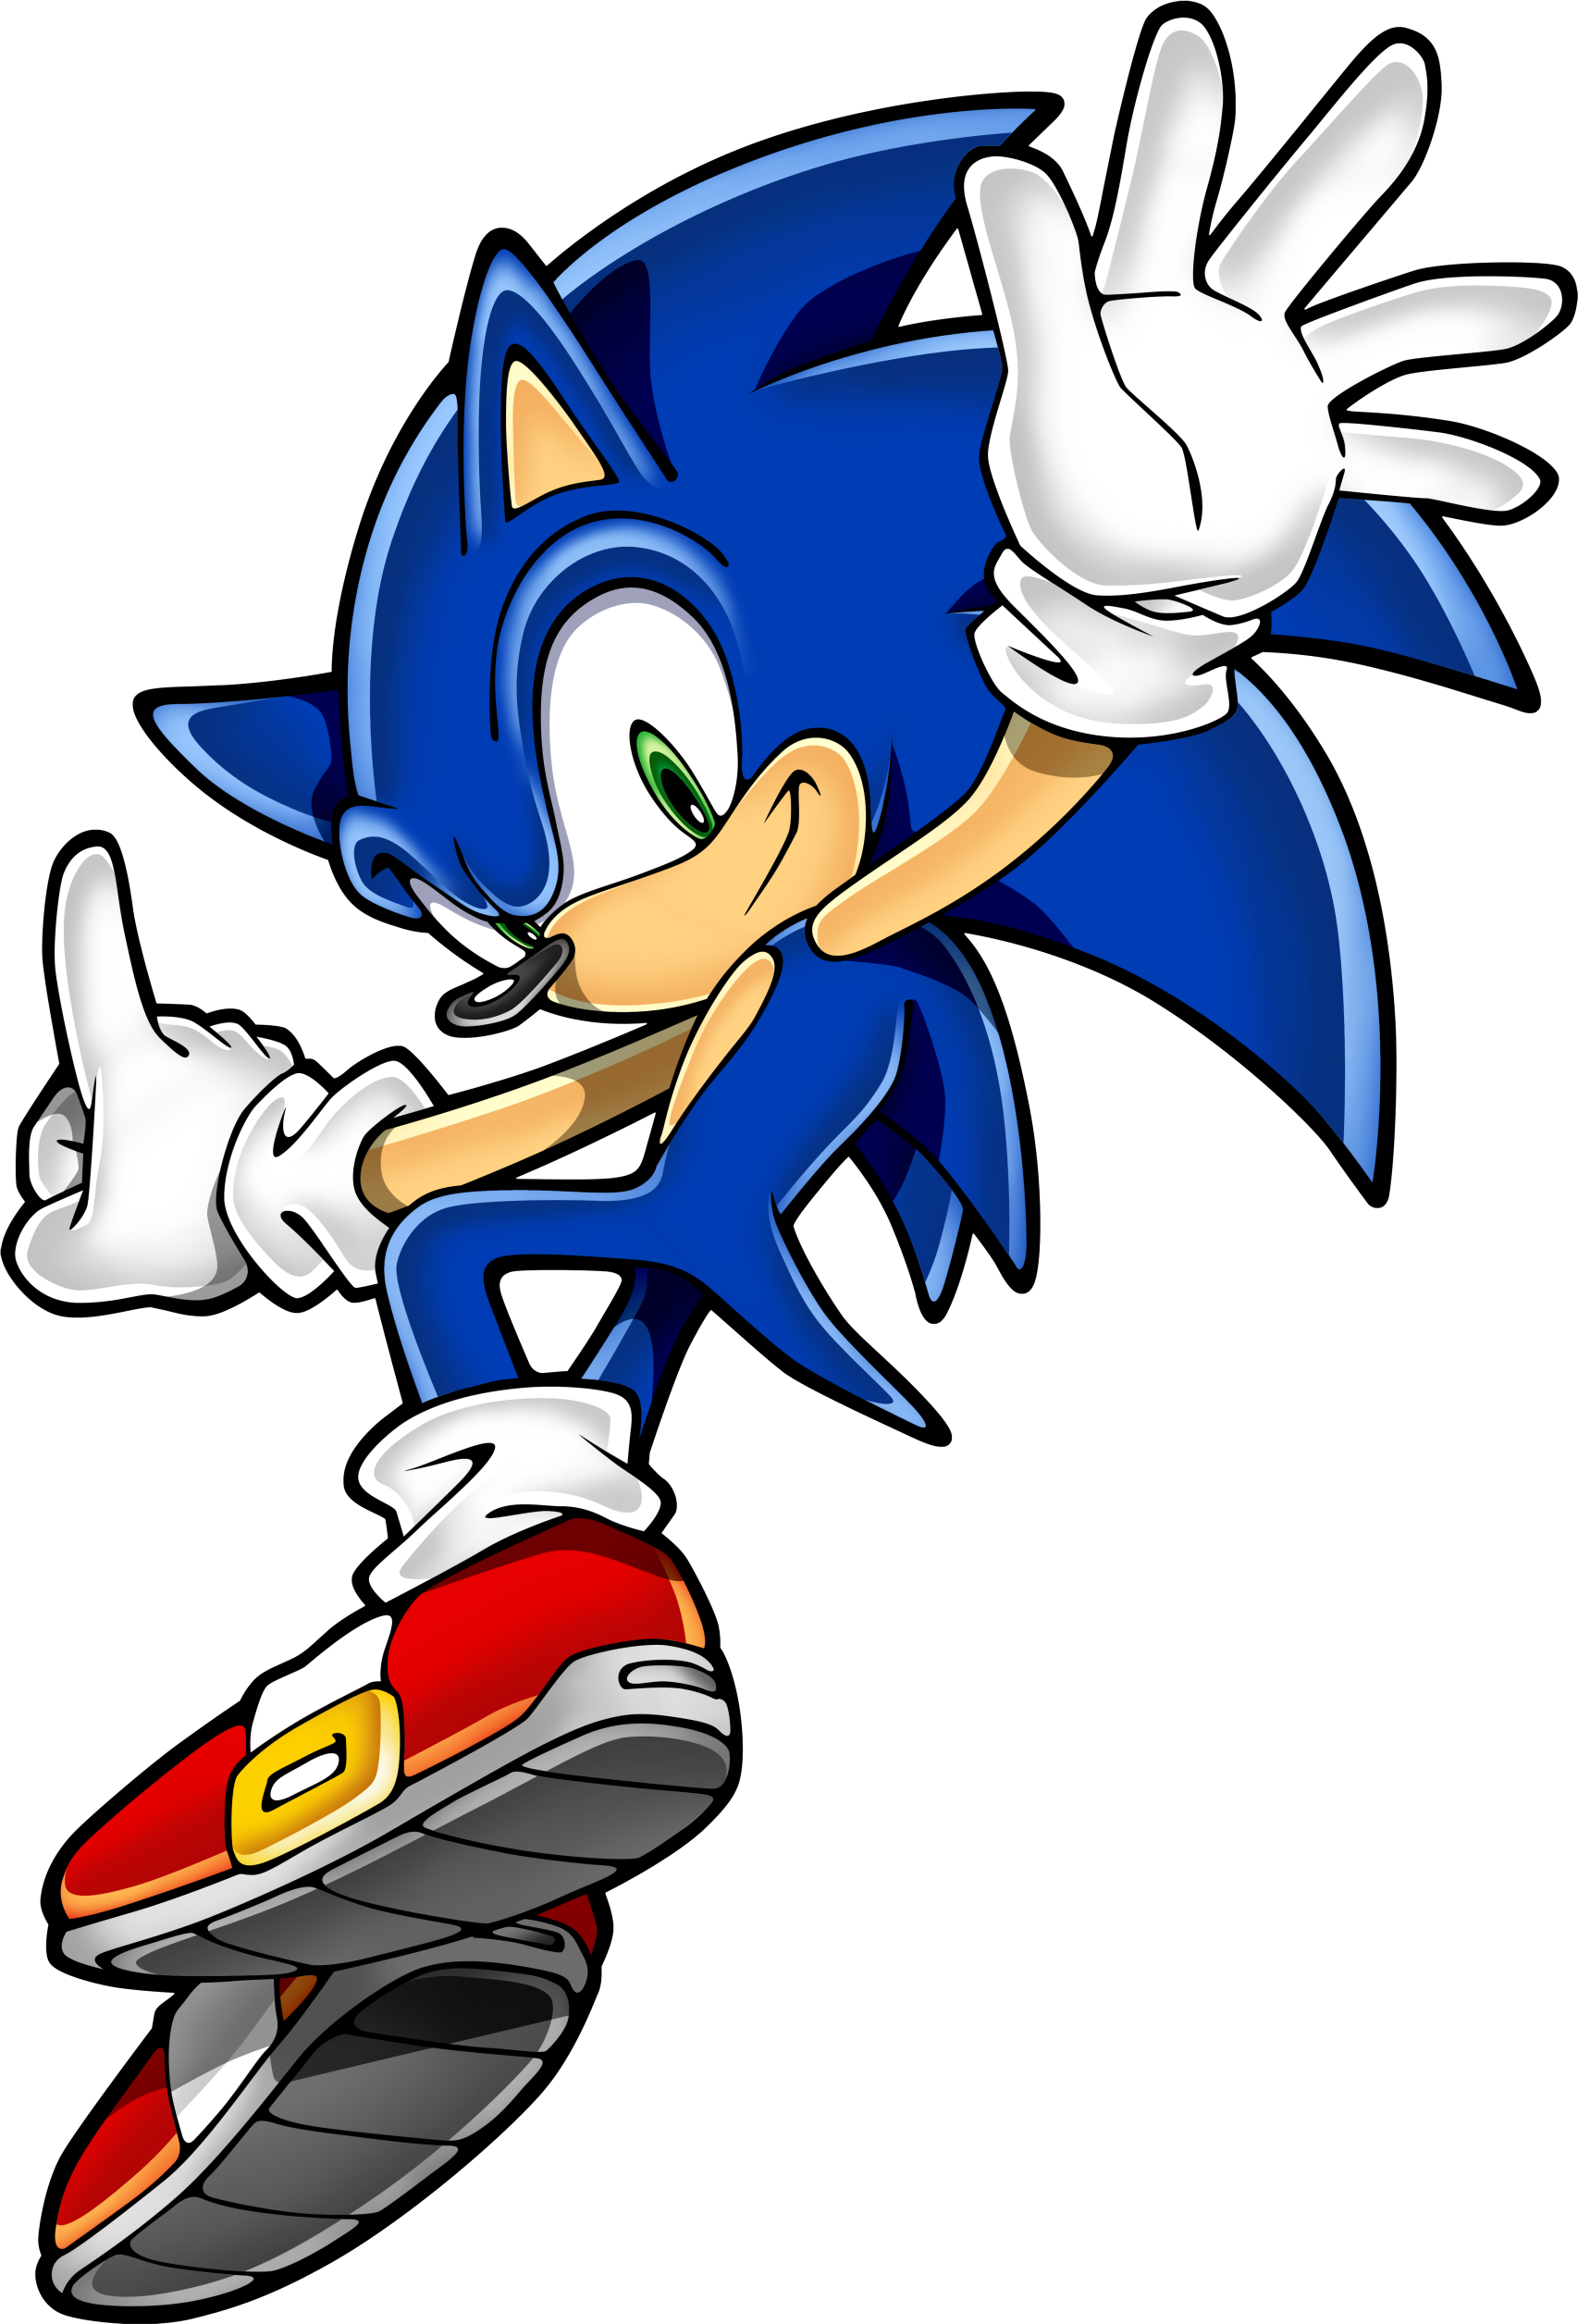 Sonic The Hedgehog PNG - 13017